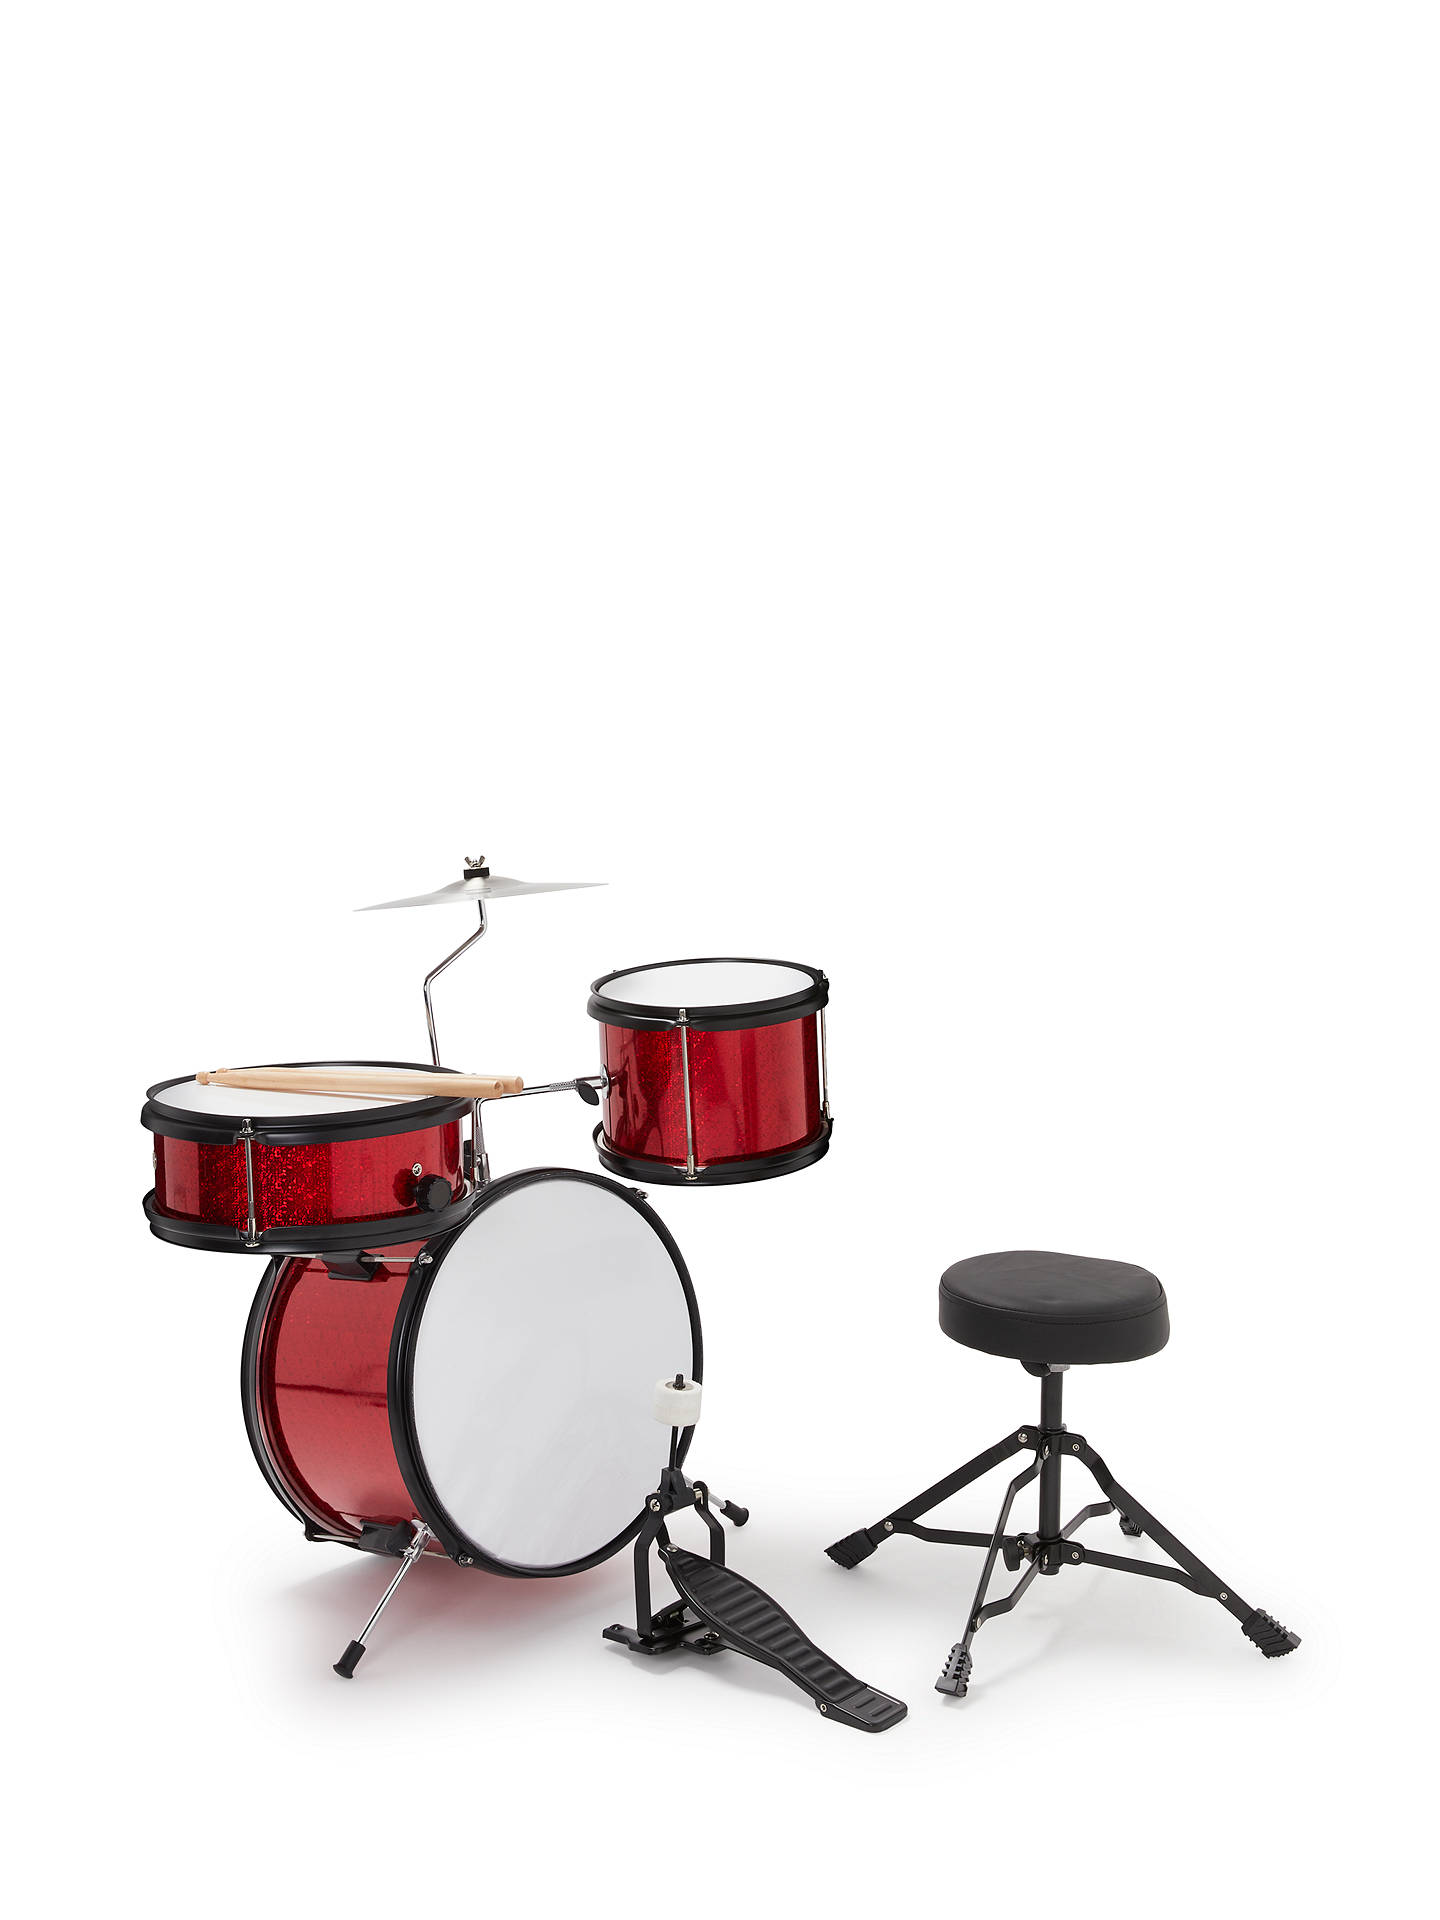 BuyJohn Lewis & Partners Children's Professional Drum Set Online at johnlewis.com